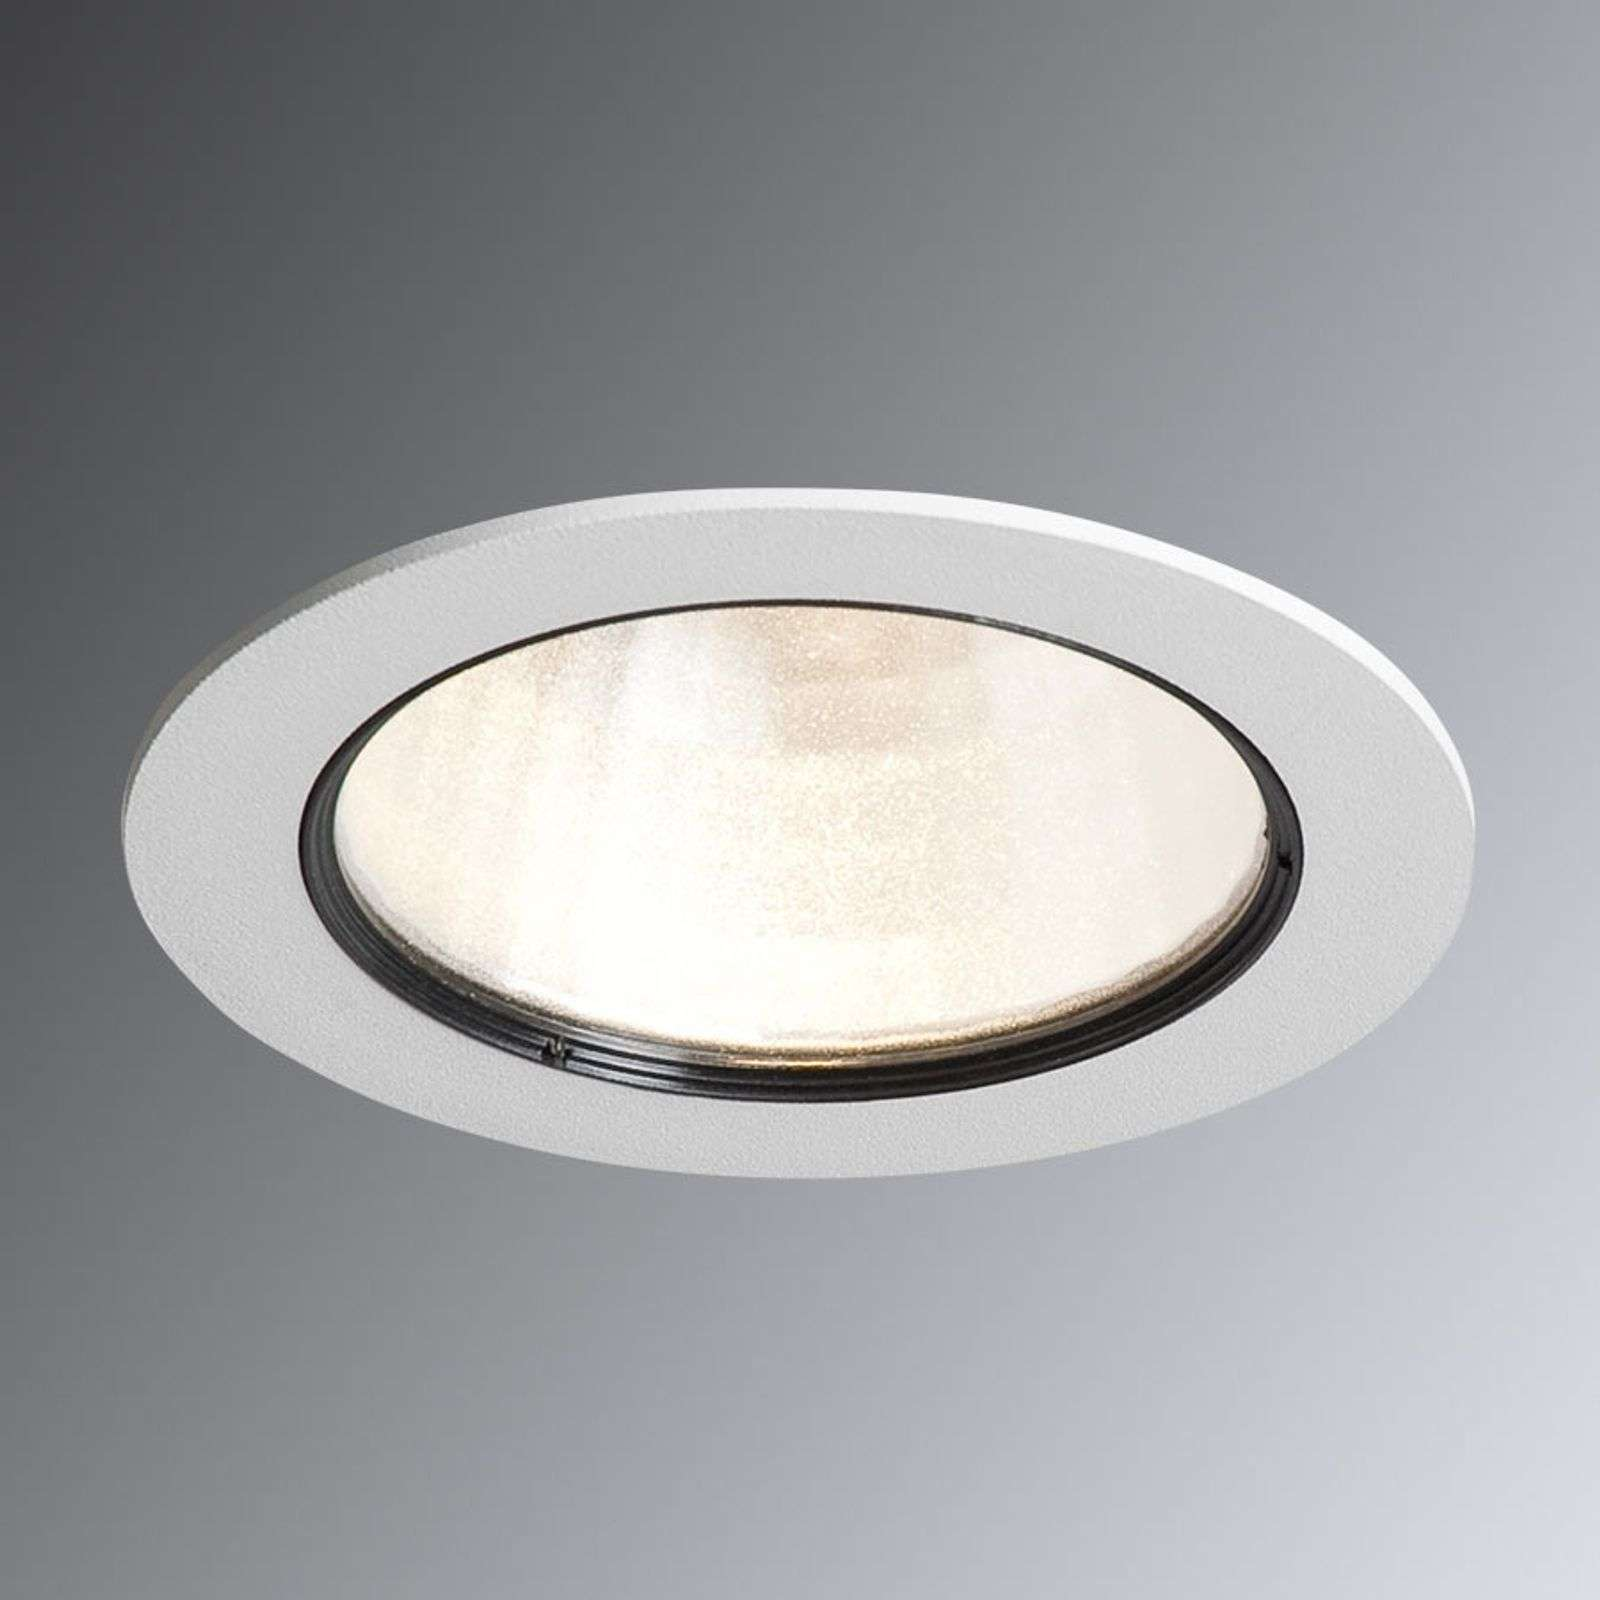 Sunray II spot encastrable LED 3 000 K, 18 W